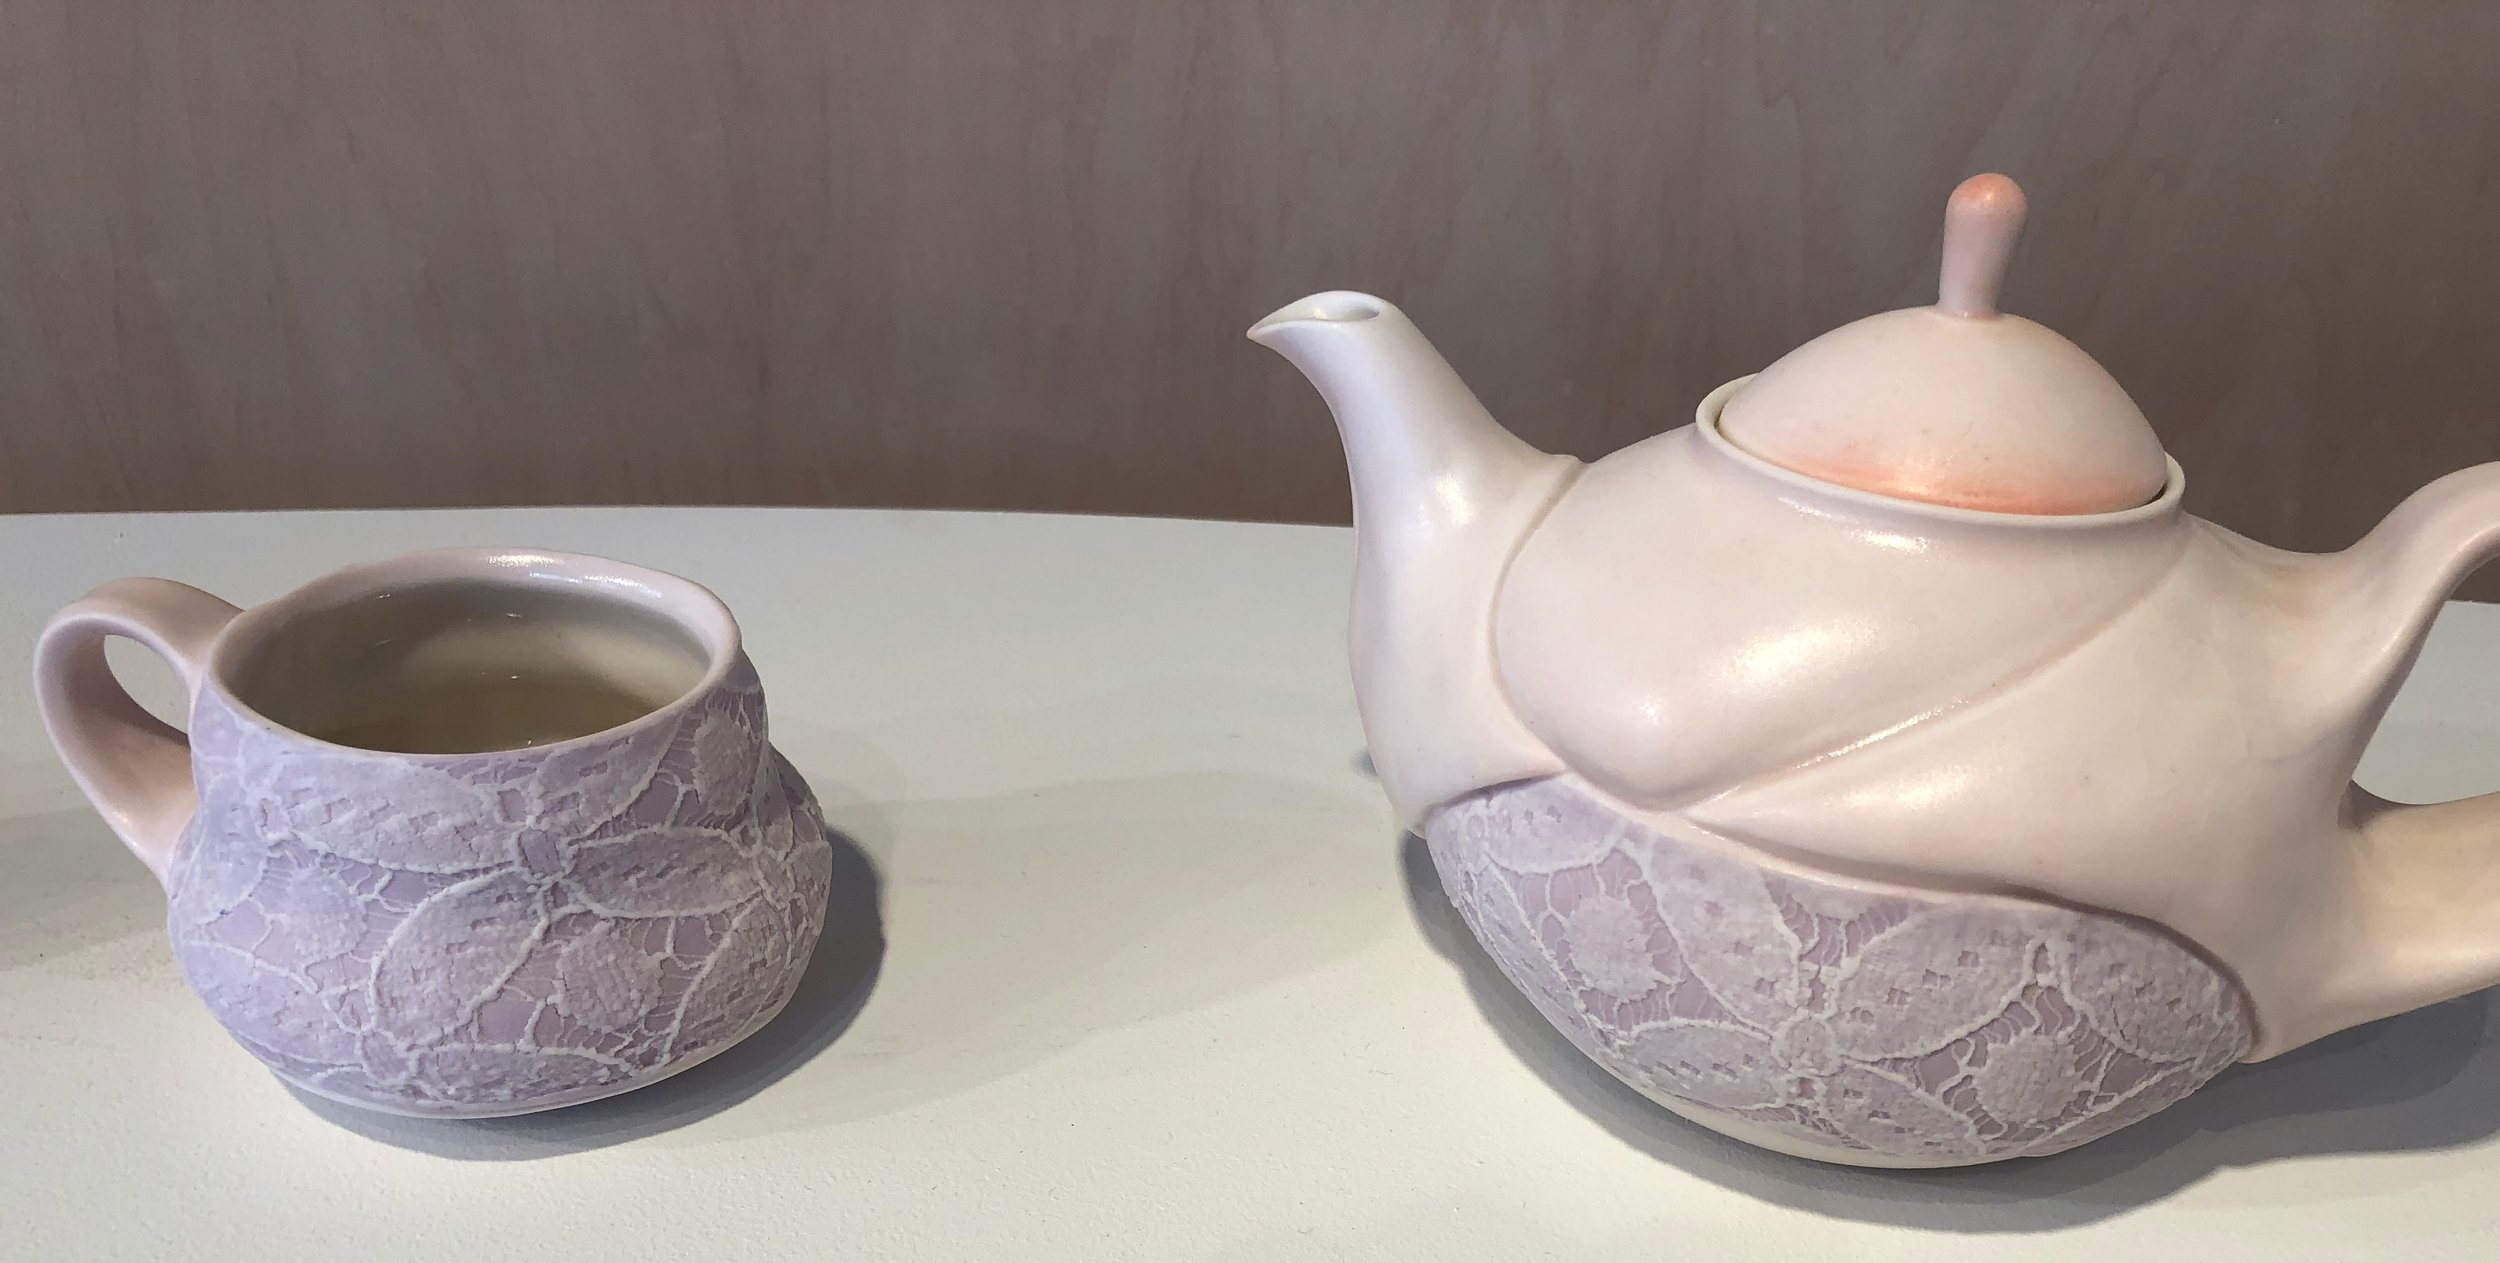 exhibition of  samantha briegel 's work, included these ceramics topped with lace.